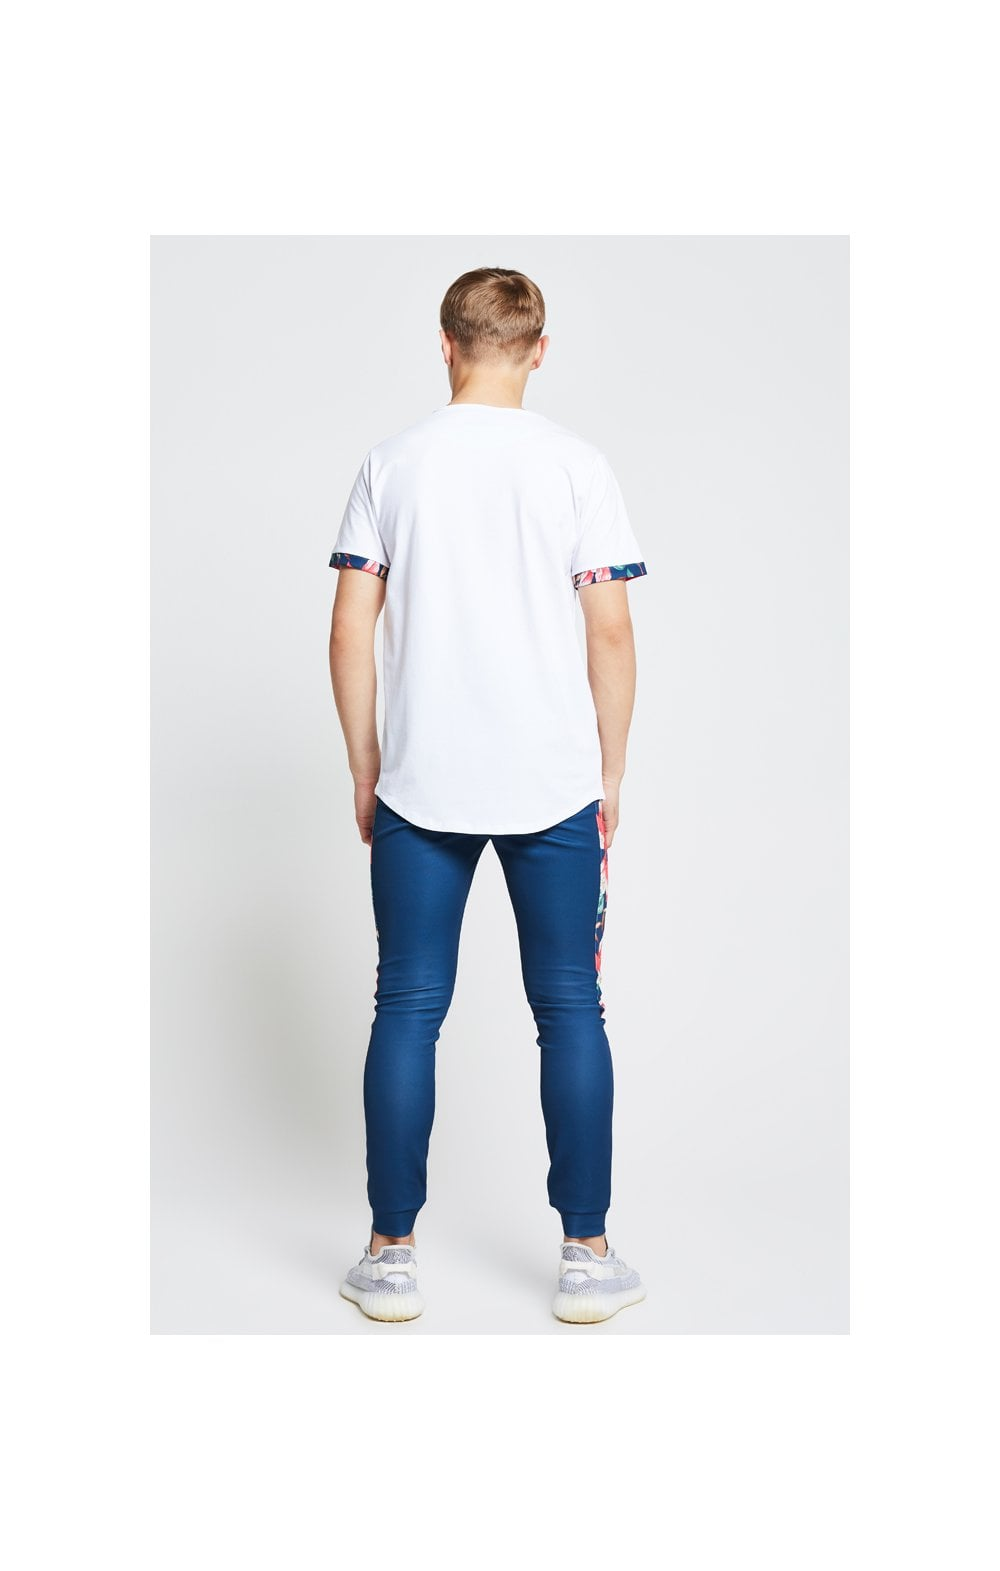 Illusive London Contrast Cuff Tee – White & Tropical Leaf (4)